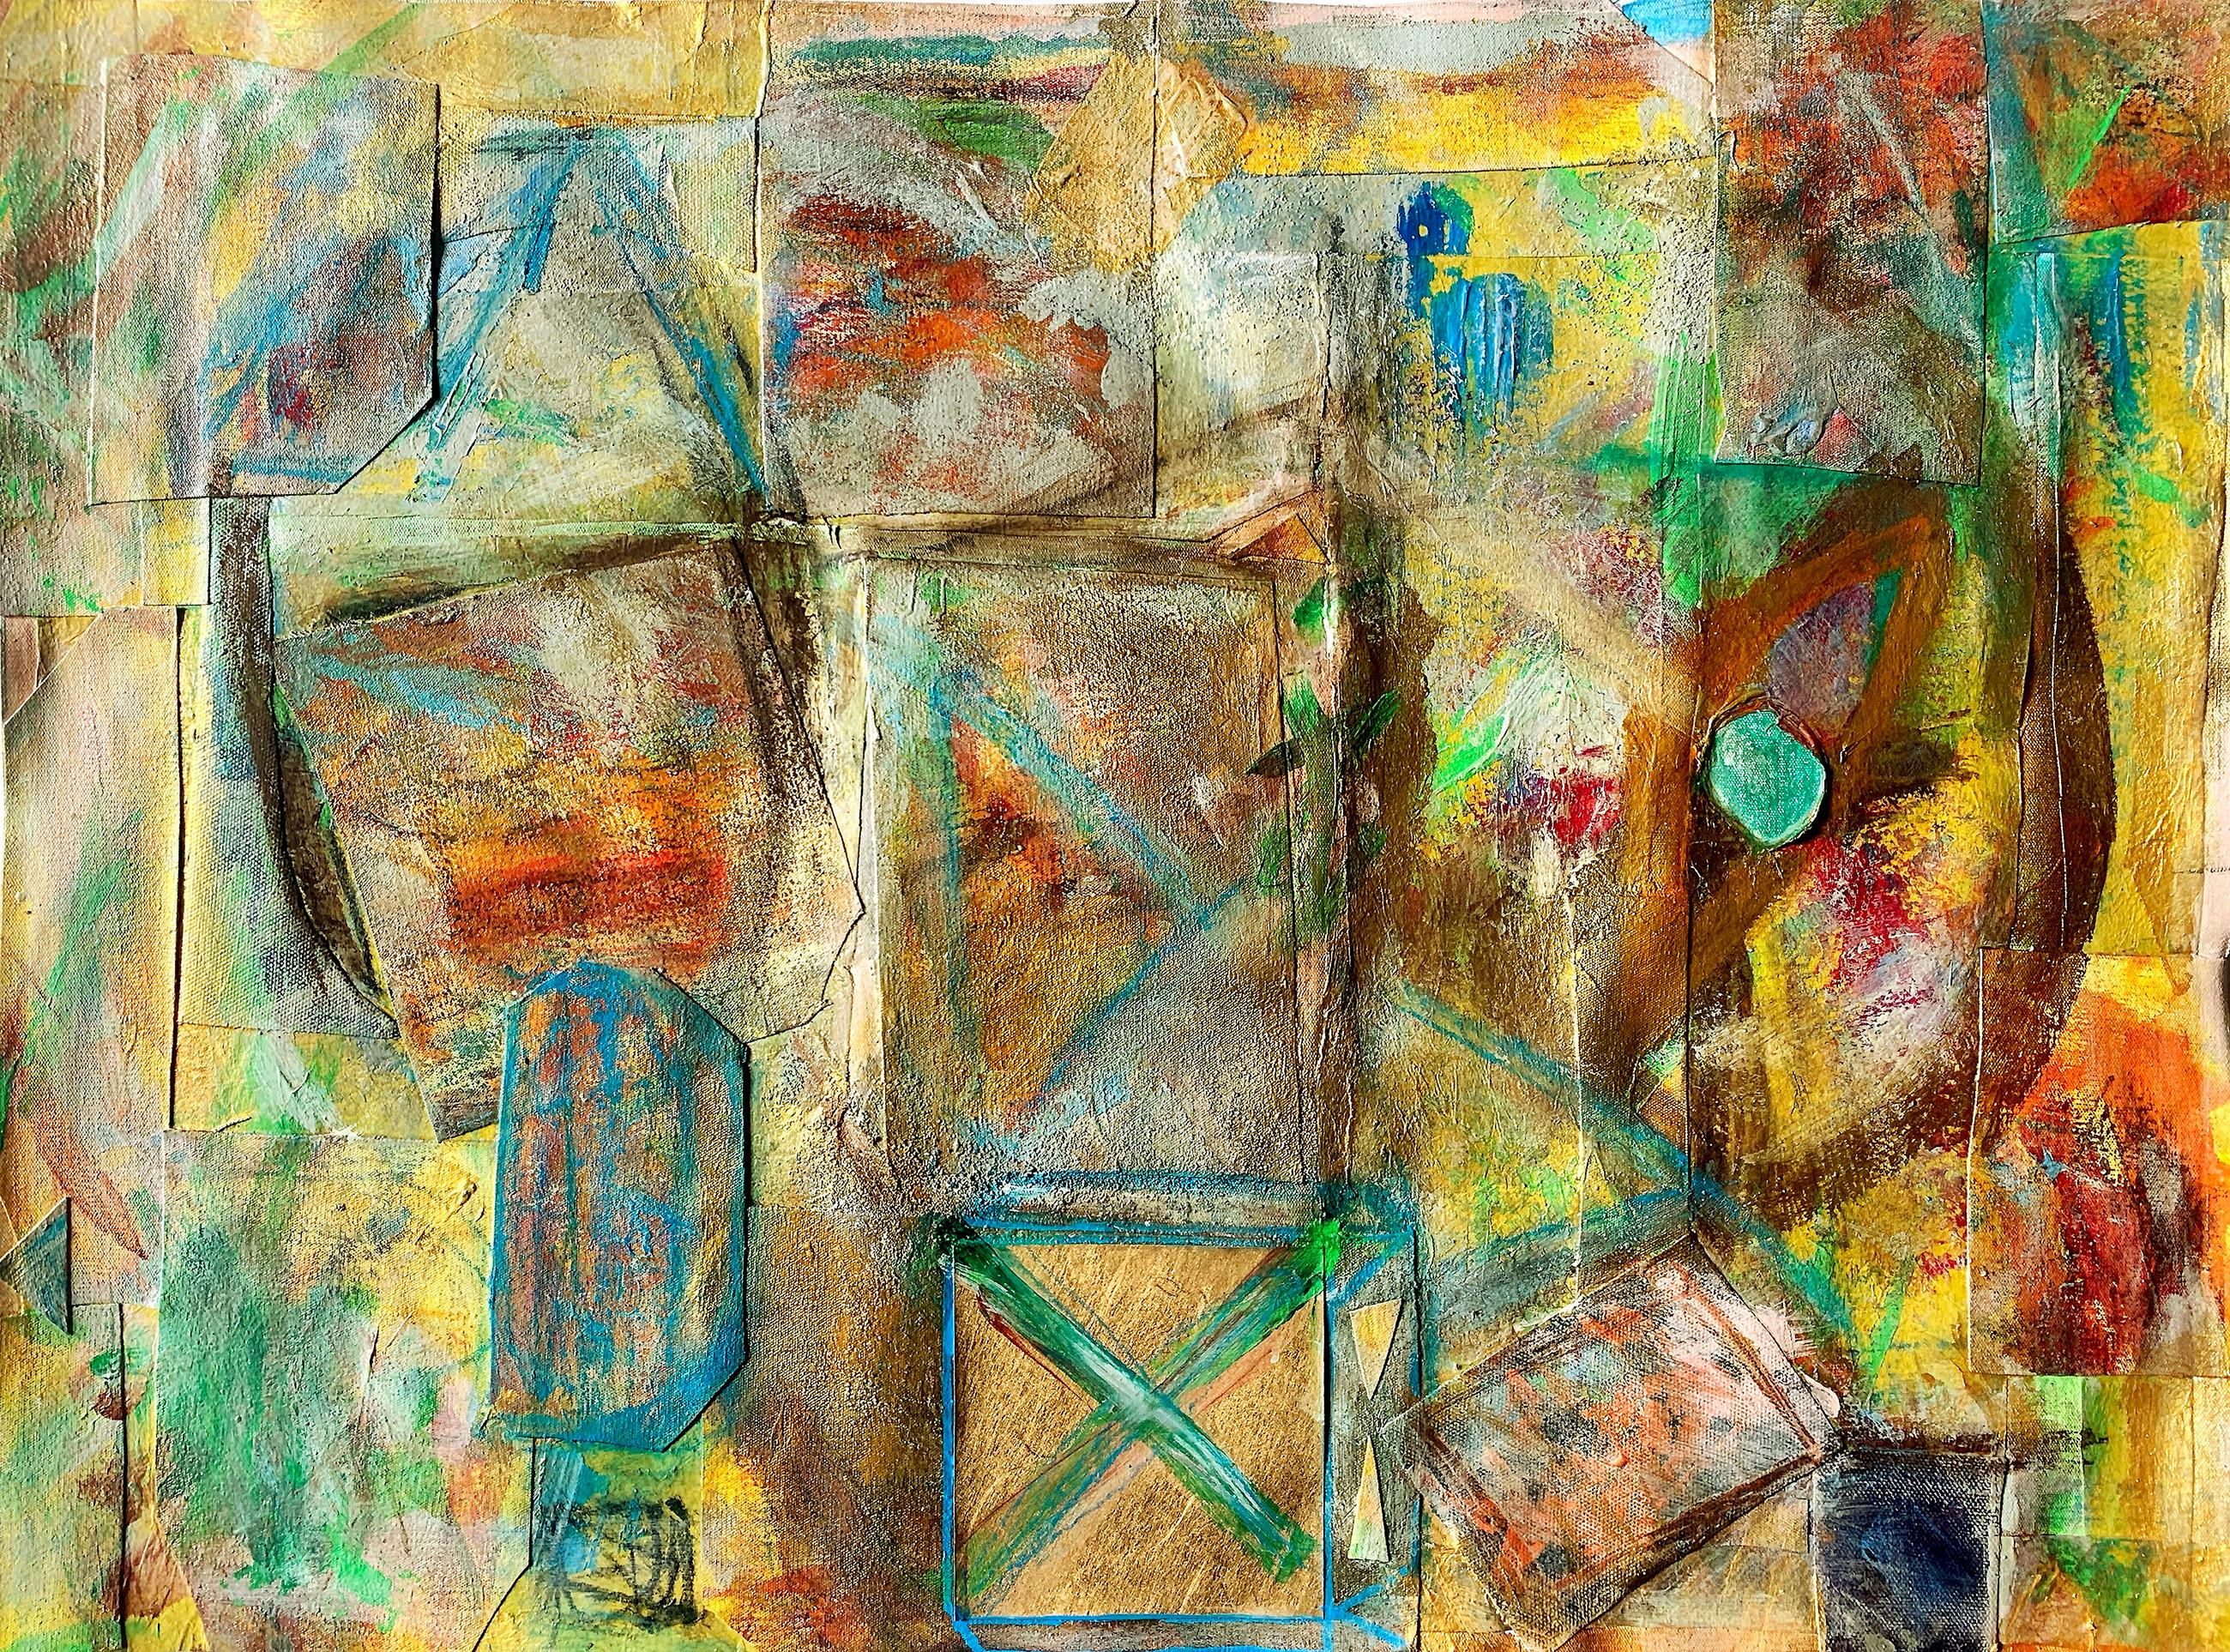 The Third Eye, Contemporary Abstract Painting on Canvas